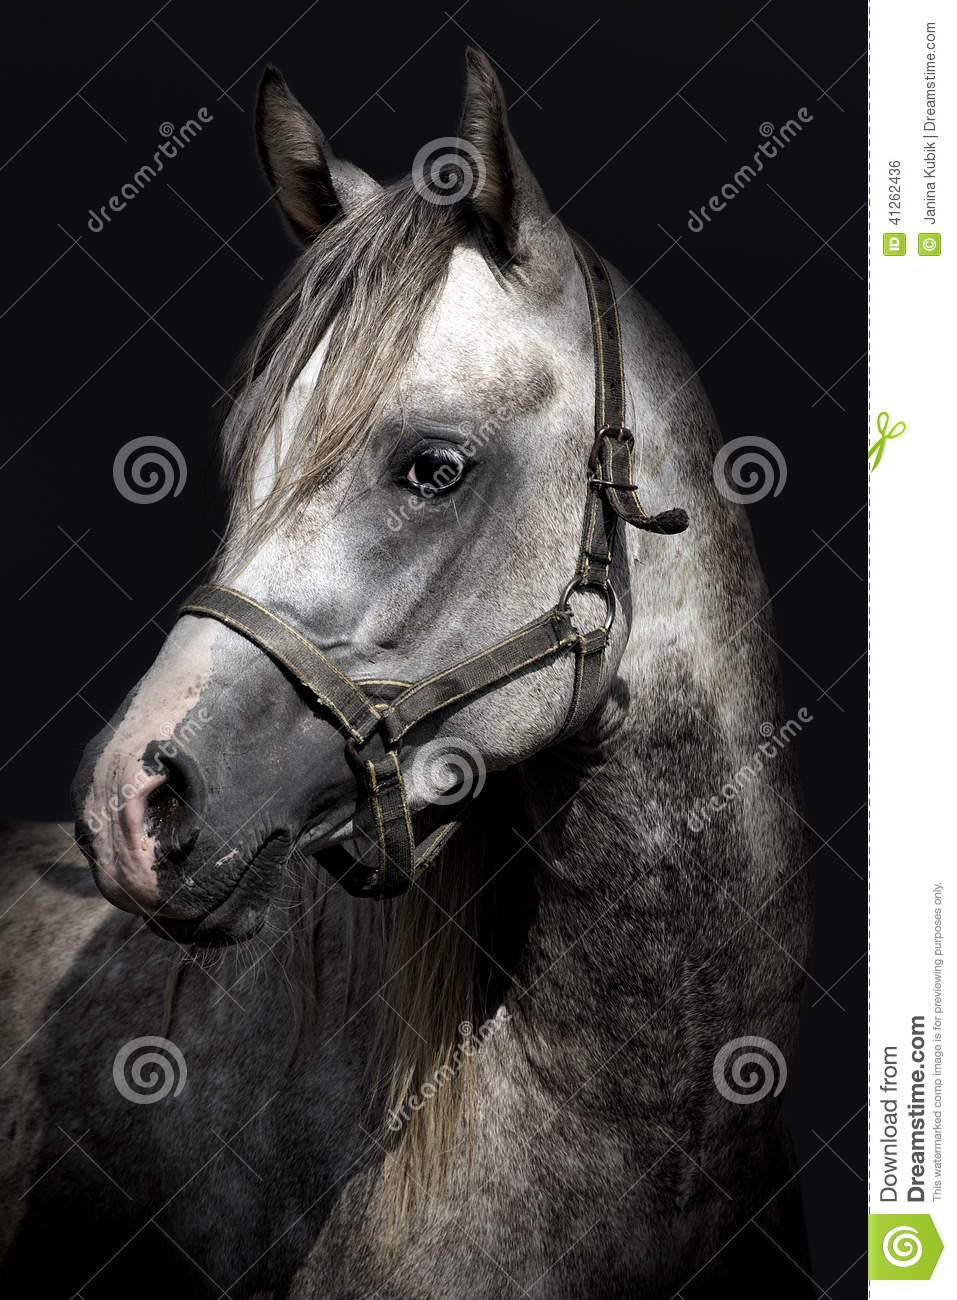 A Head Of A Horse Against A Black Background Stock Photo ...